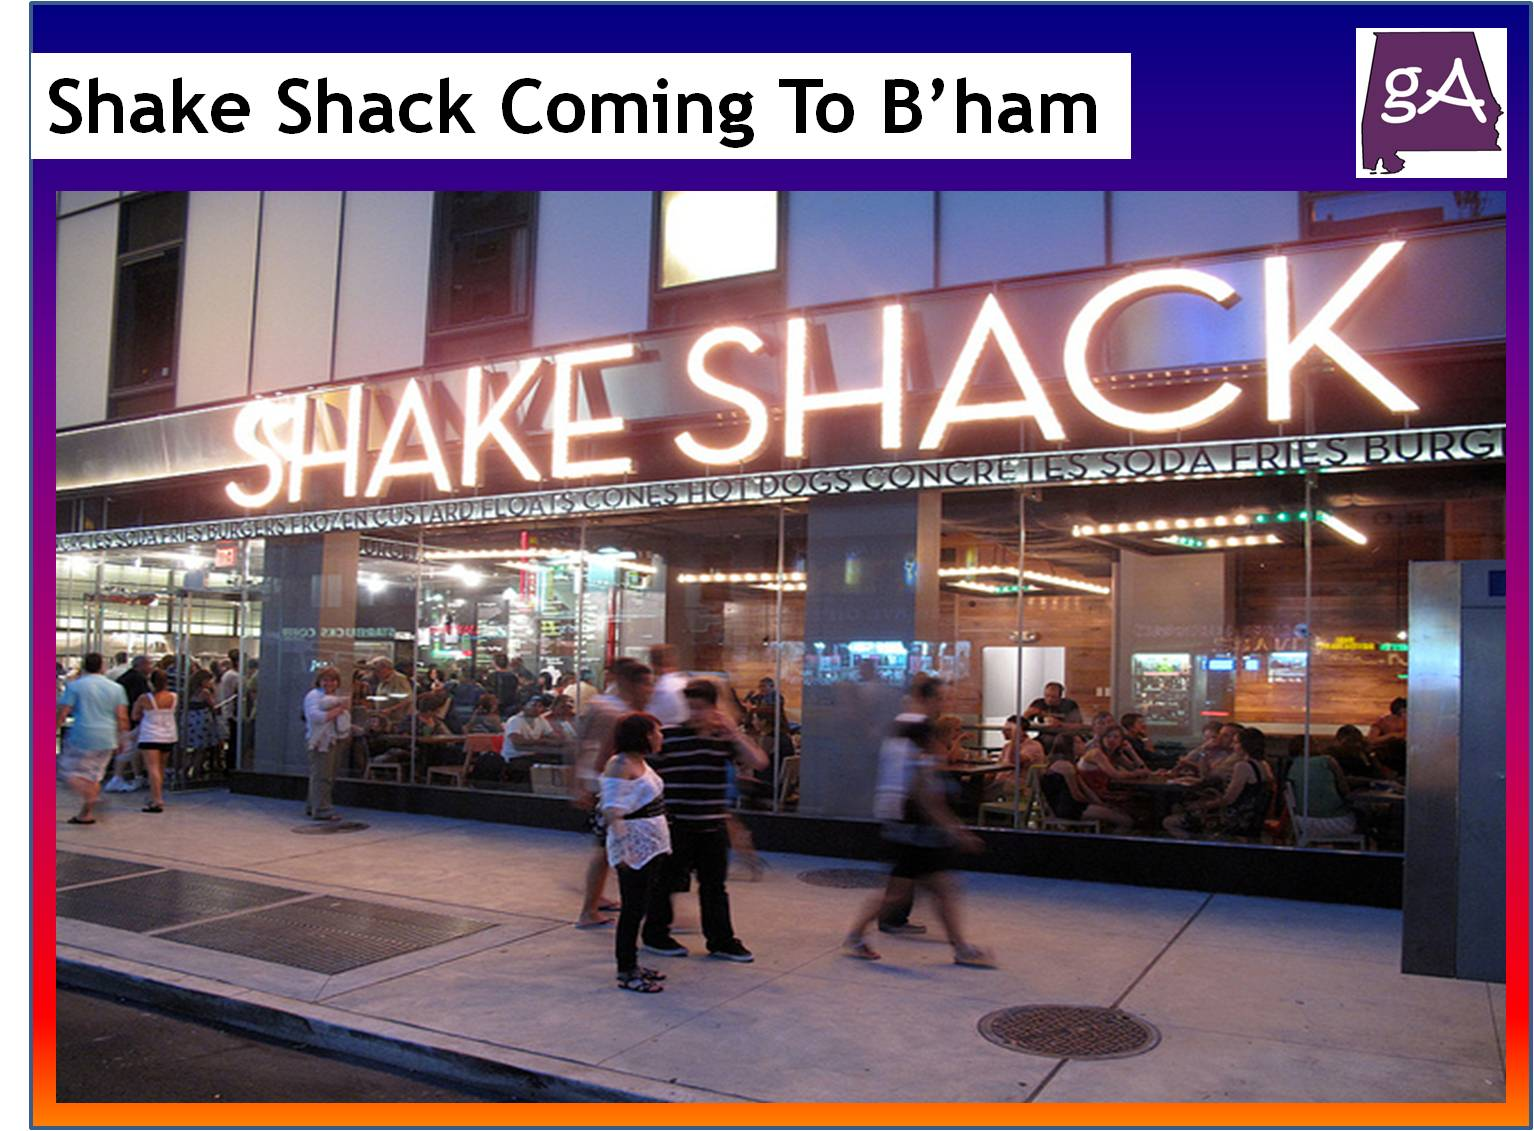 Shake Shack Opens In Alabama For The First Time Wednesday August 22